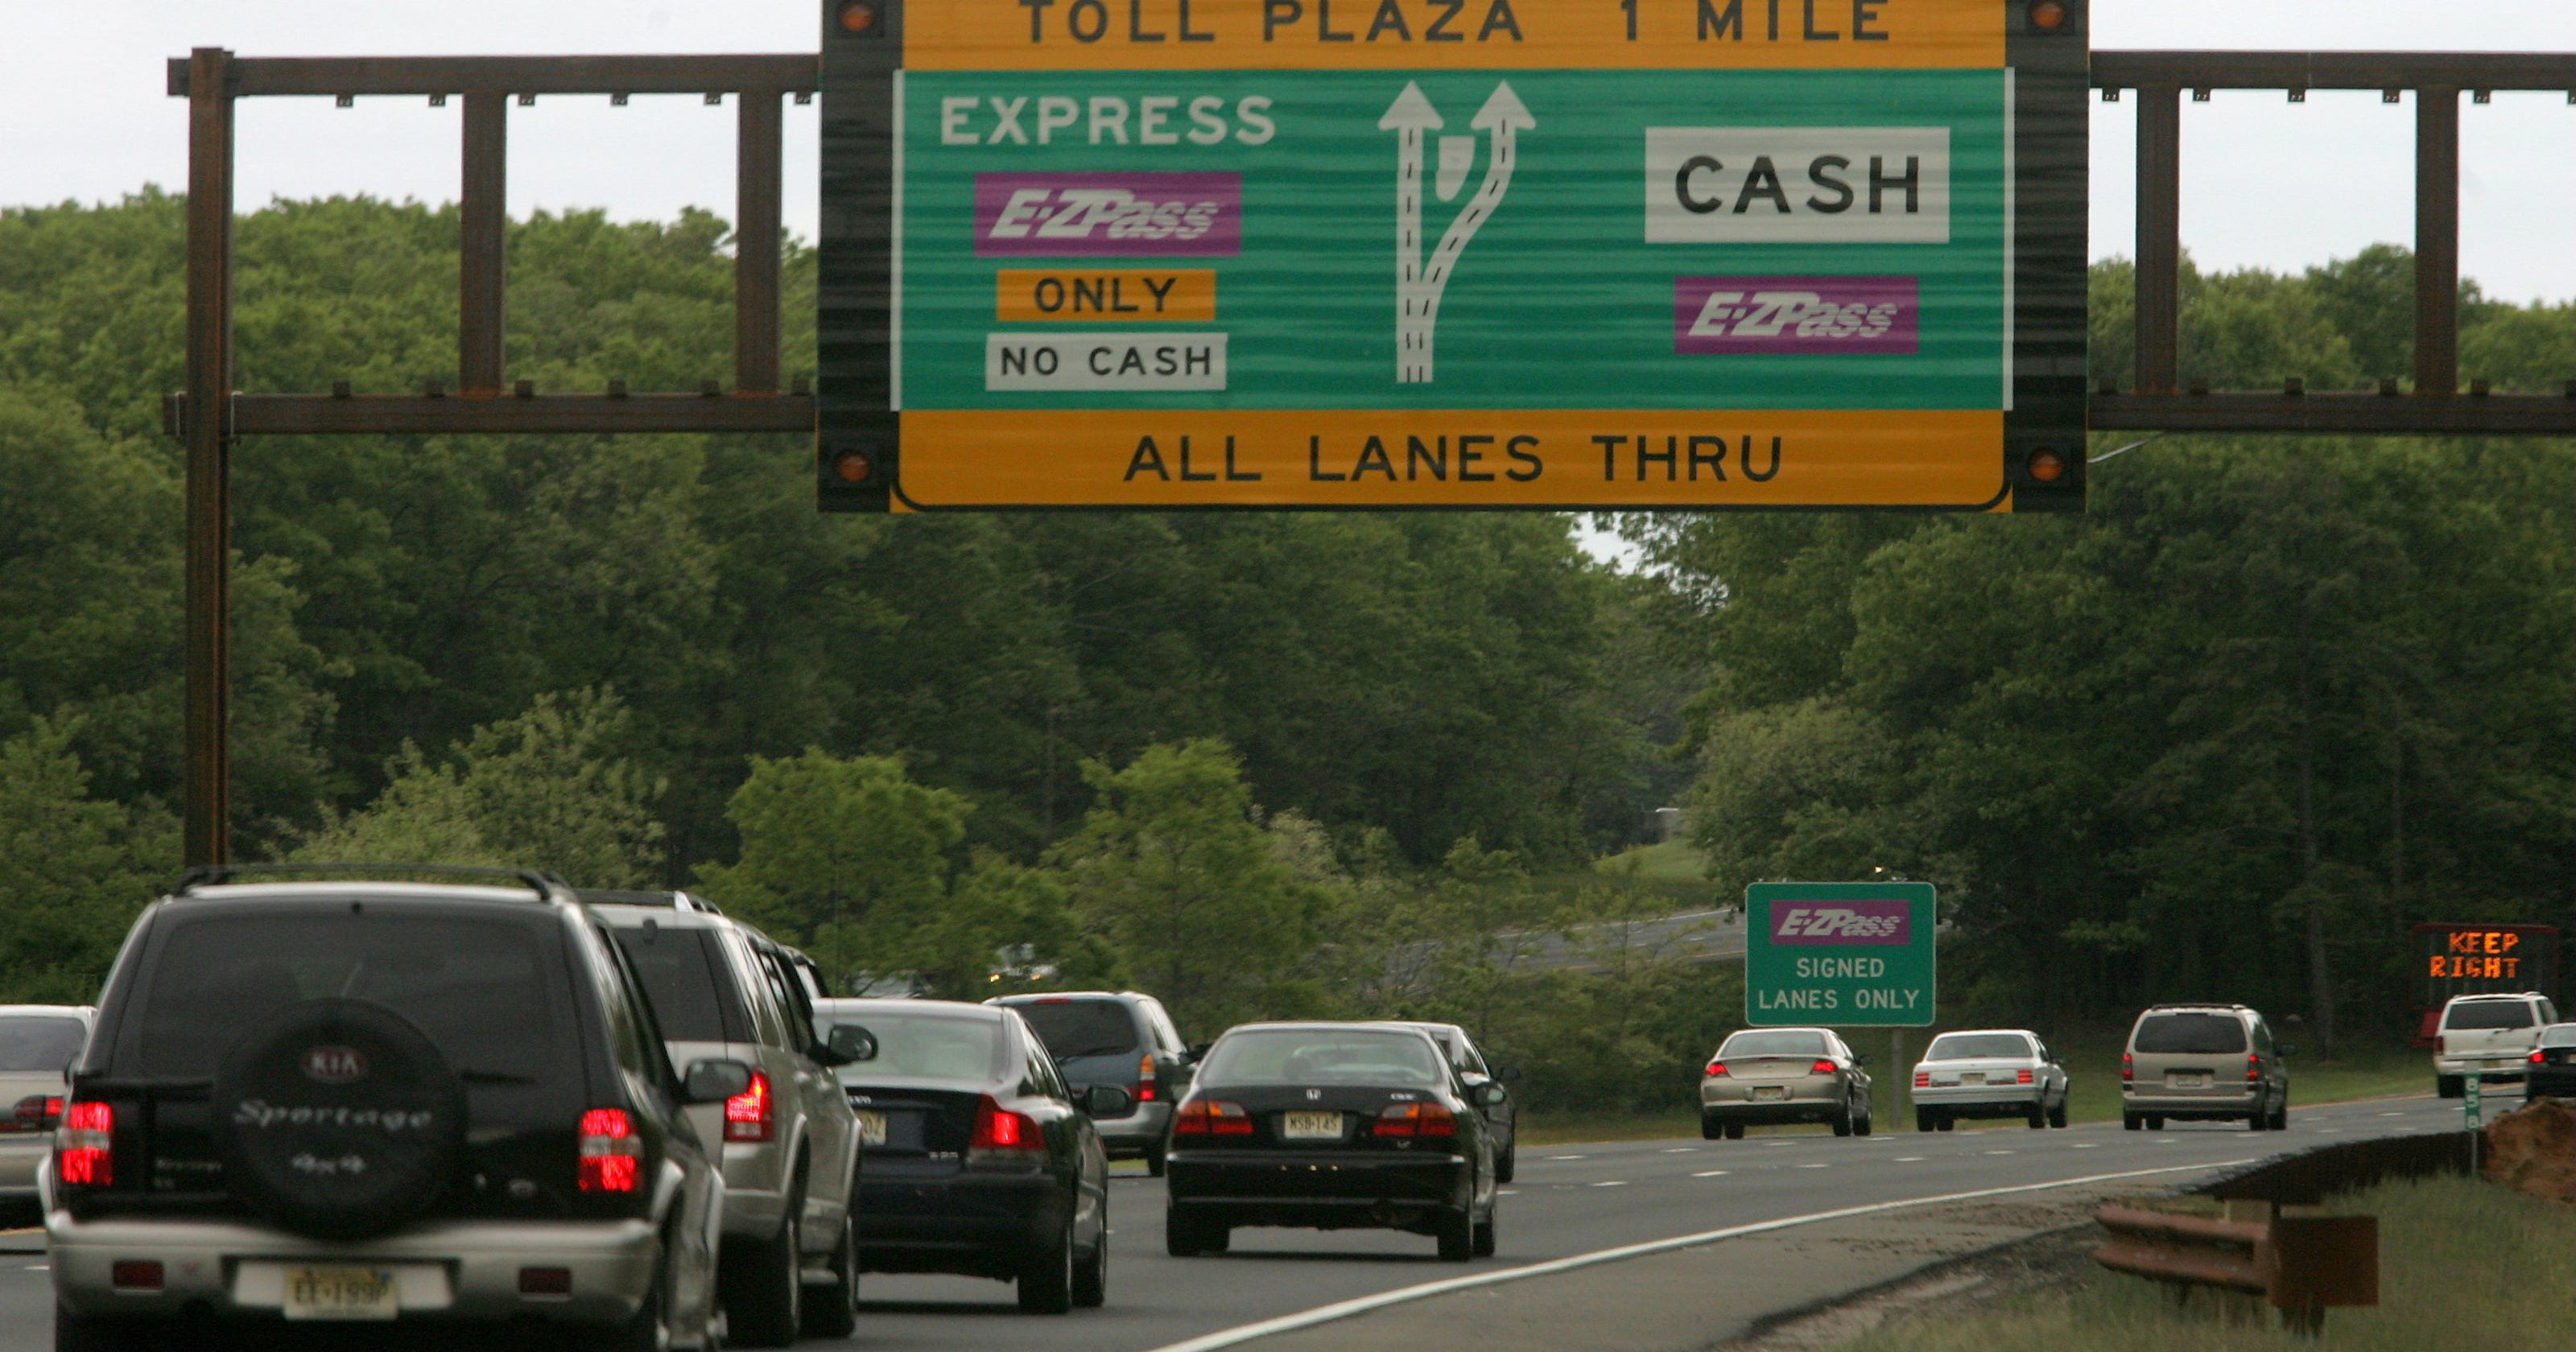 Man killed in 1 of 2 N J  turnpike accidents